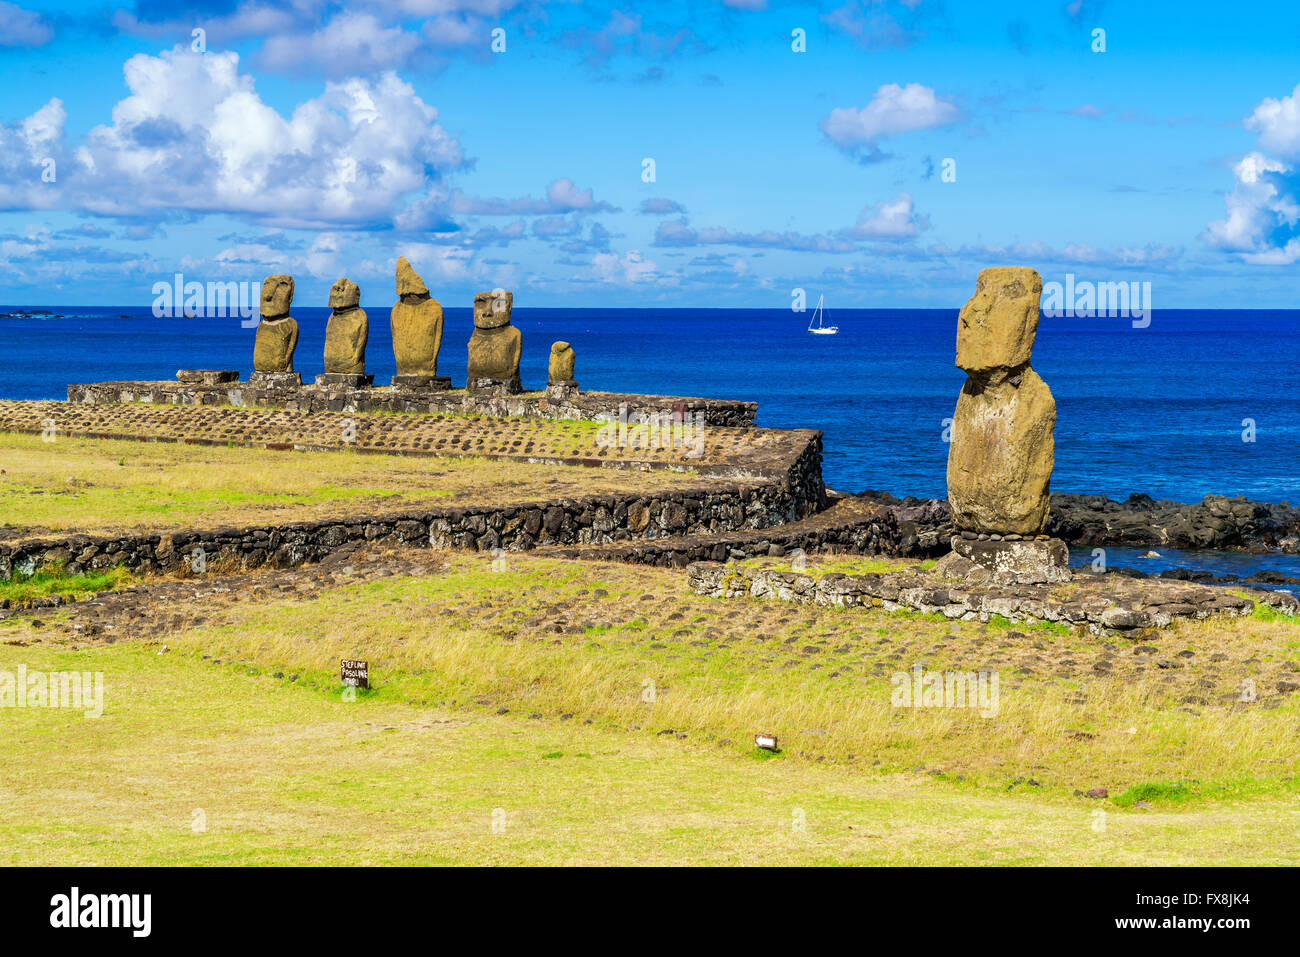 Ahu Tahai, Ahu Vai Uri and Pacific Ocean at Tahat Archaeological Complex, Easter Island, Chile - Stock Image